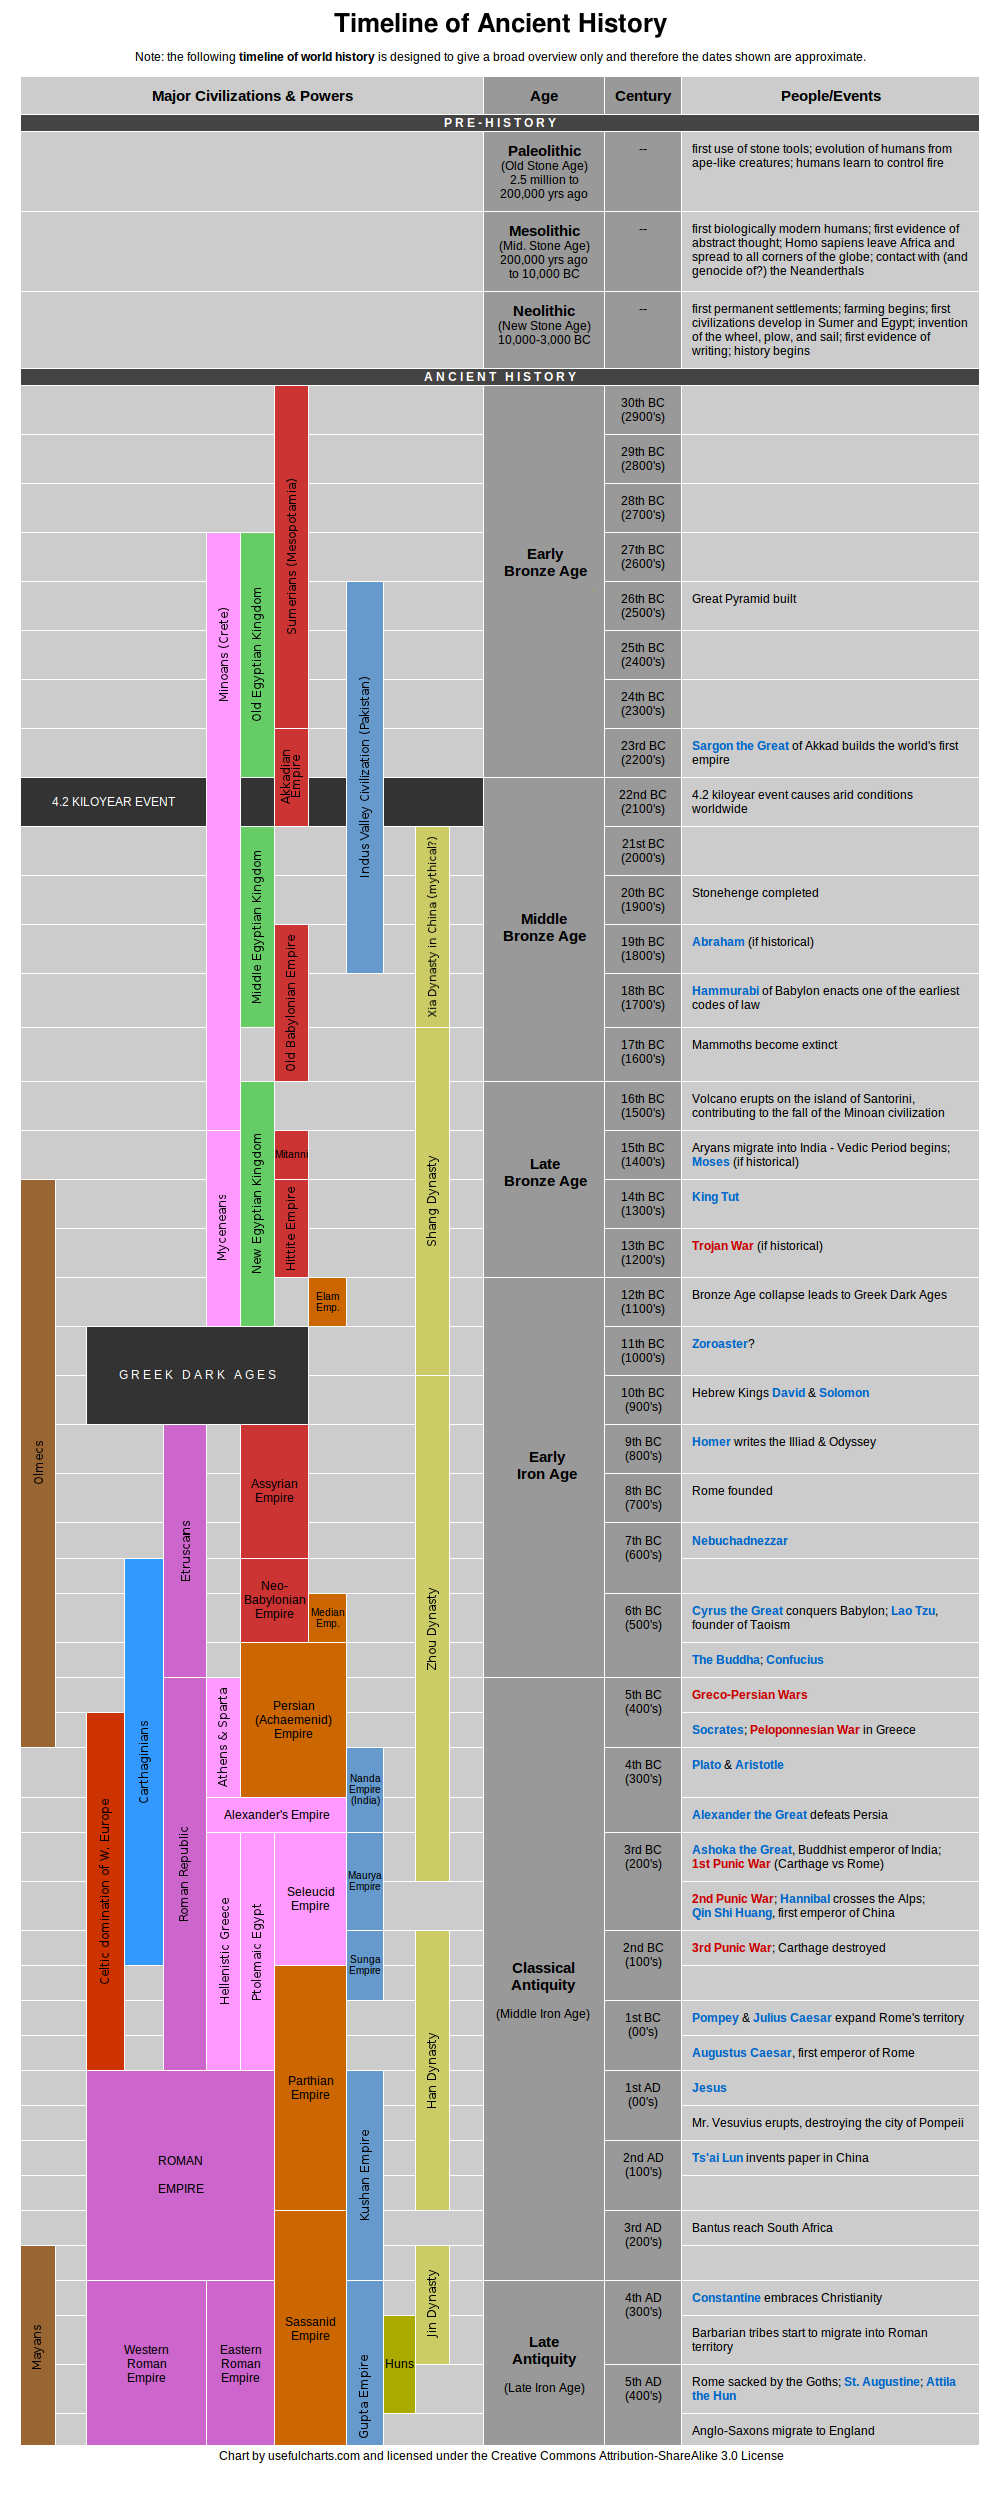 Easy to read timeline of ancient civilizations, but not events ...